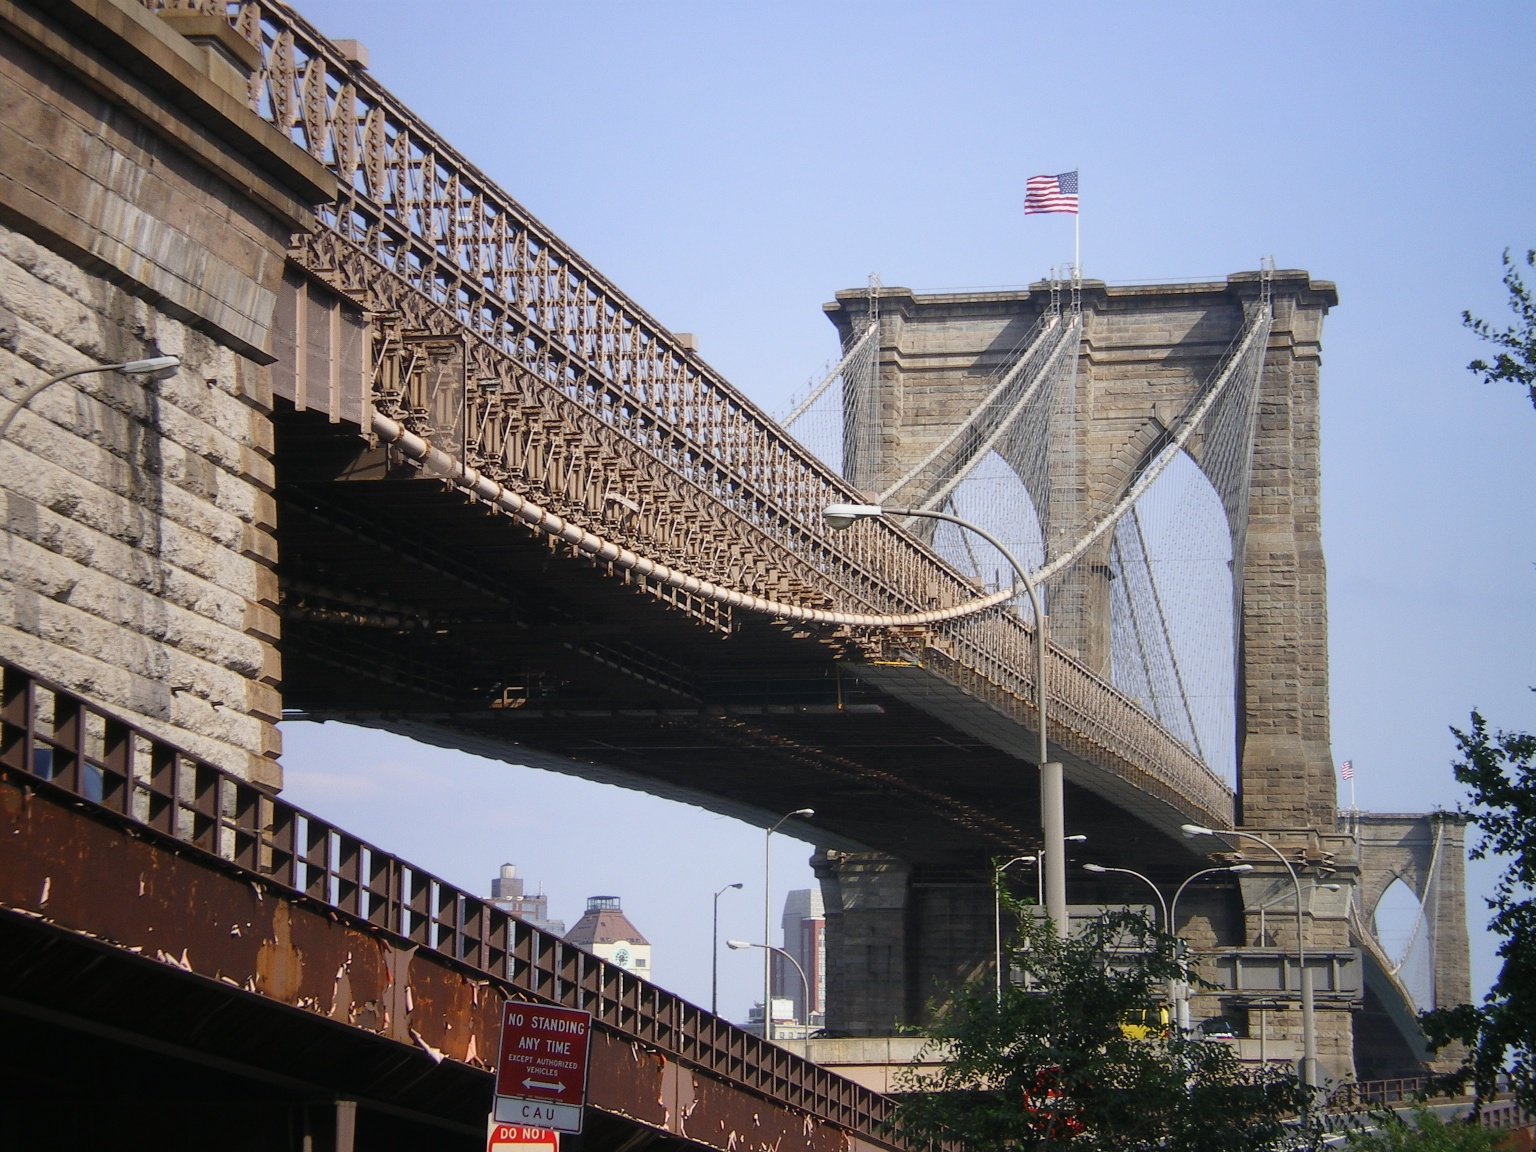 New york school trip planning guide and itinerary ideas for New york city day trip ideas